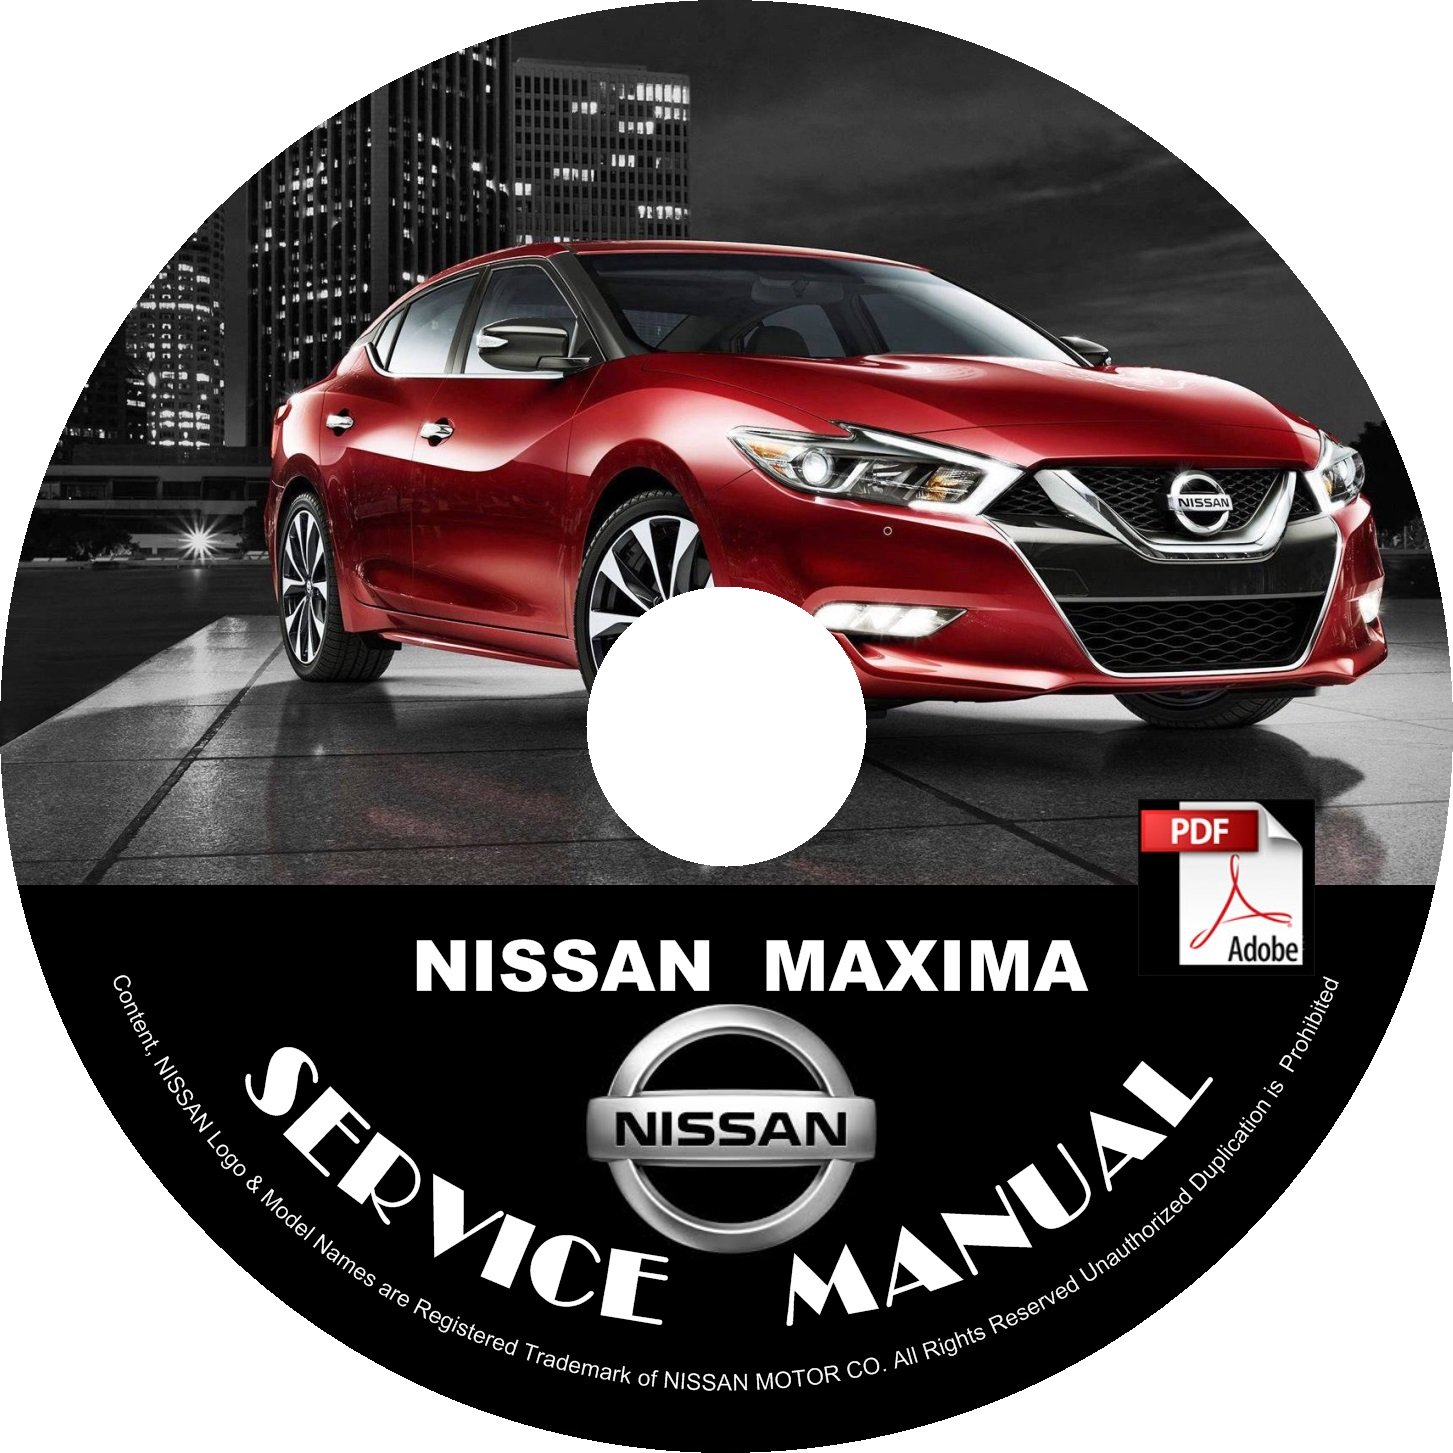 2016 Nissan Maxima Service Repair Shop Manual on CD Fix Repair Rebuild '16 Workshop Guide